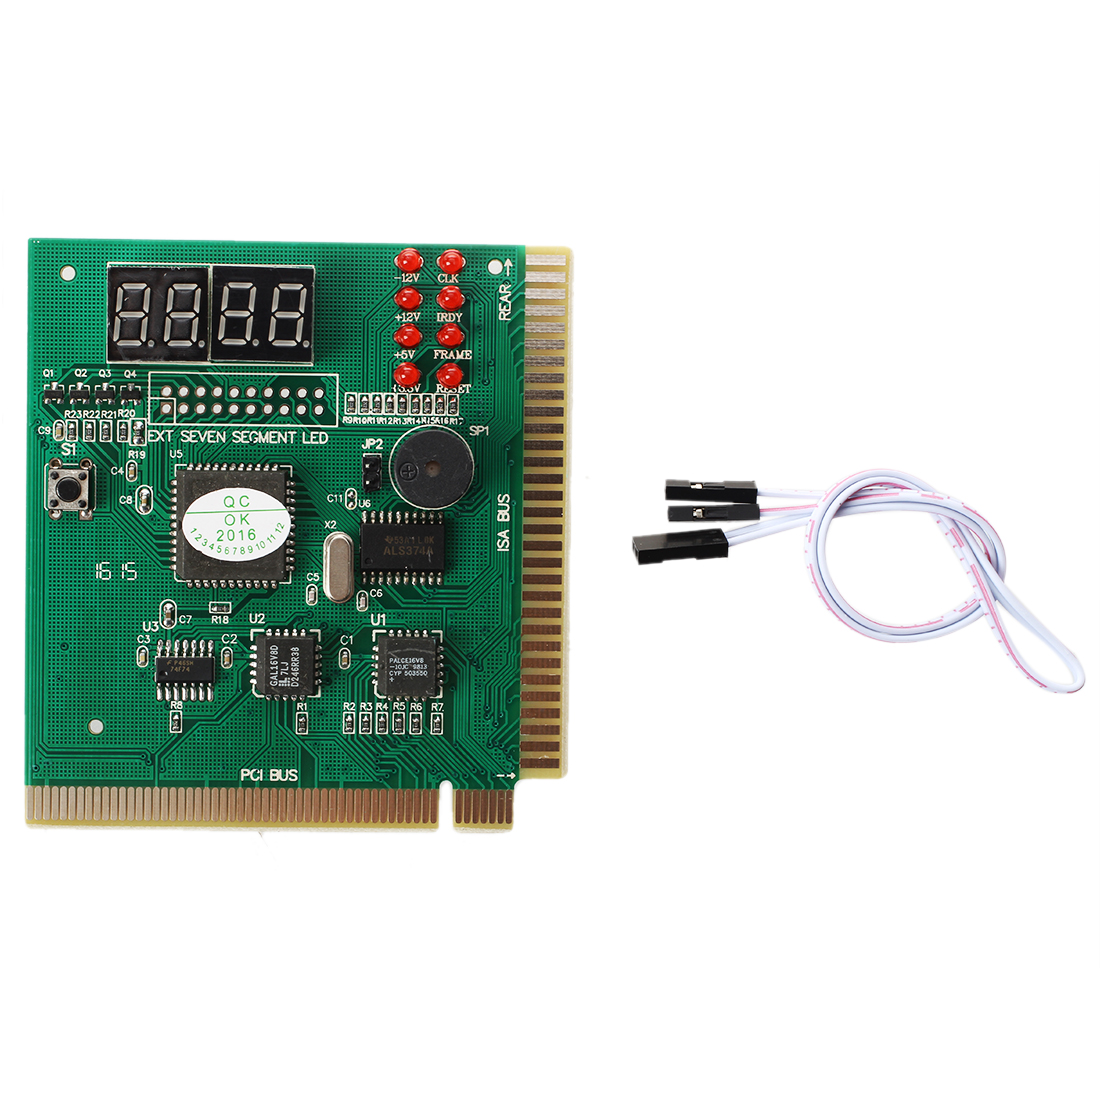 MOOL Diagnostic Analyzer Card For Motherboard-PCI ISA